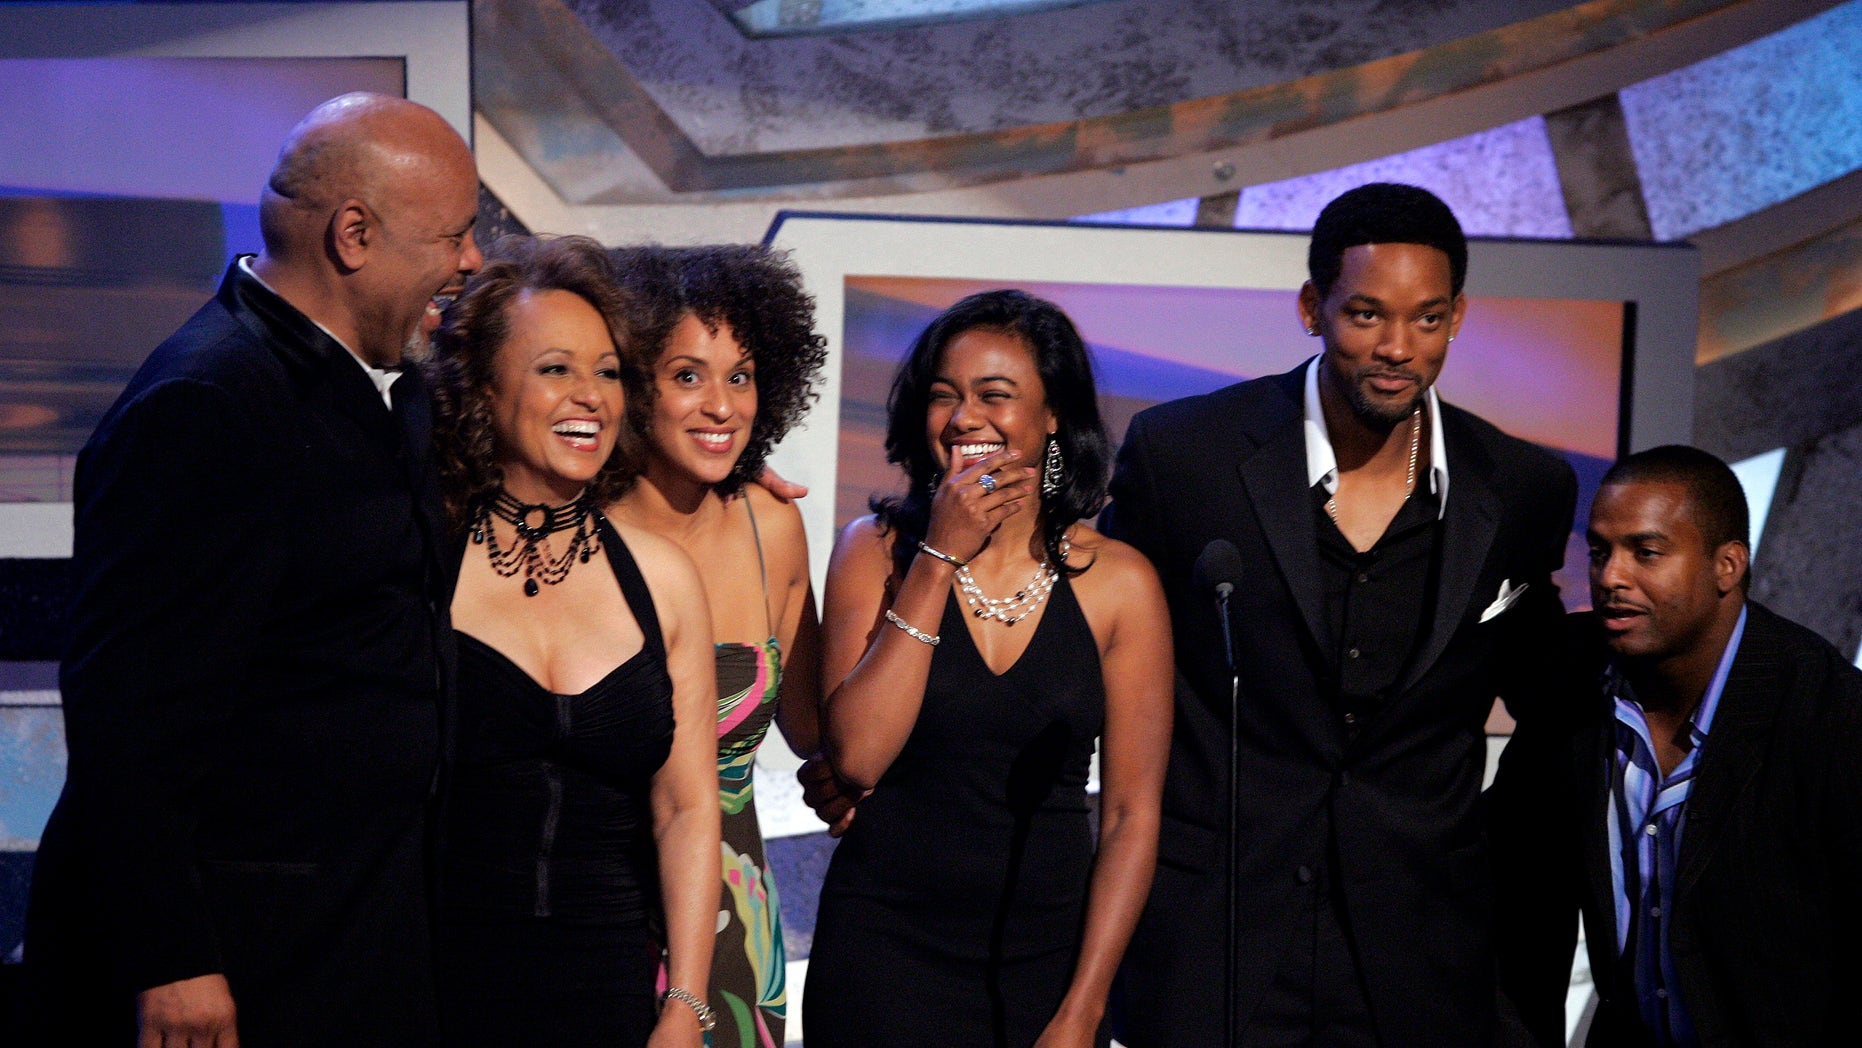 The cast of the television series 'The Fresh Prince of Bel-Air' (L-R) James Avery, Daphne Maxwell Reid, Karyn Parsons, Tatyana Ali, Will Smith and Alfonso Ribeiro reunite as they help to present an award at the 5th annual 2005 BET Awards at the Kodak Theatre in Hollywood, California June 28, 2005. REUTERS/Robert Galbraith  FSP/TW - RTRFTN5